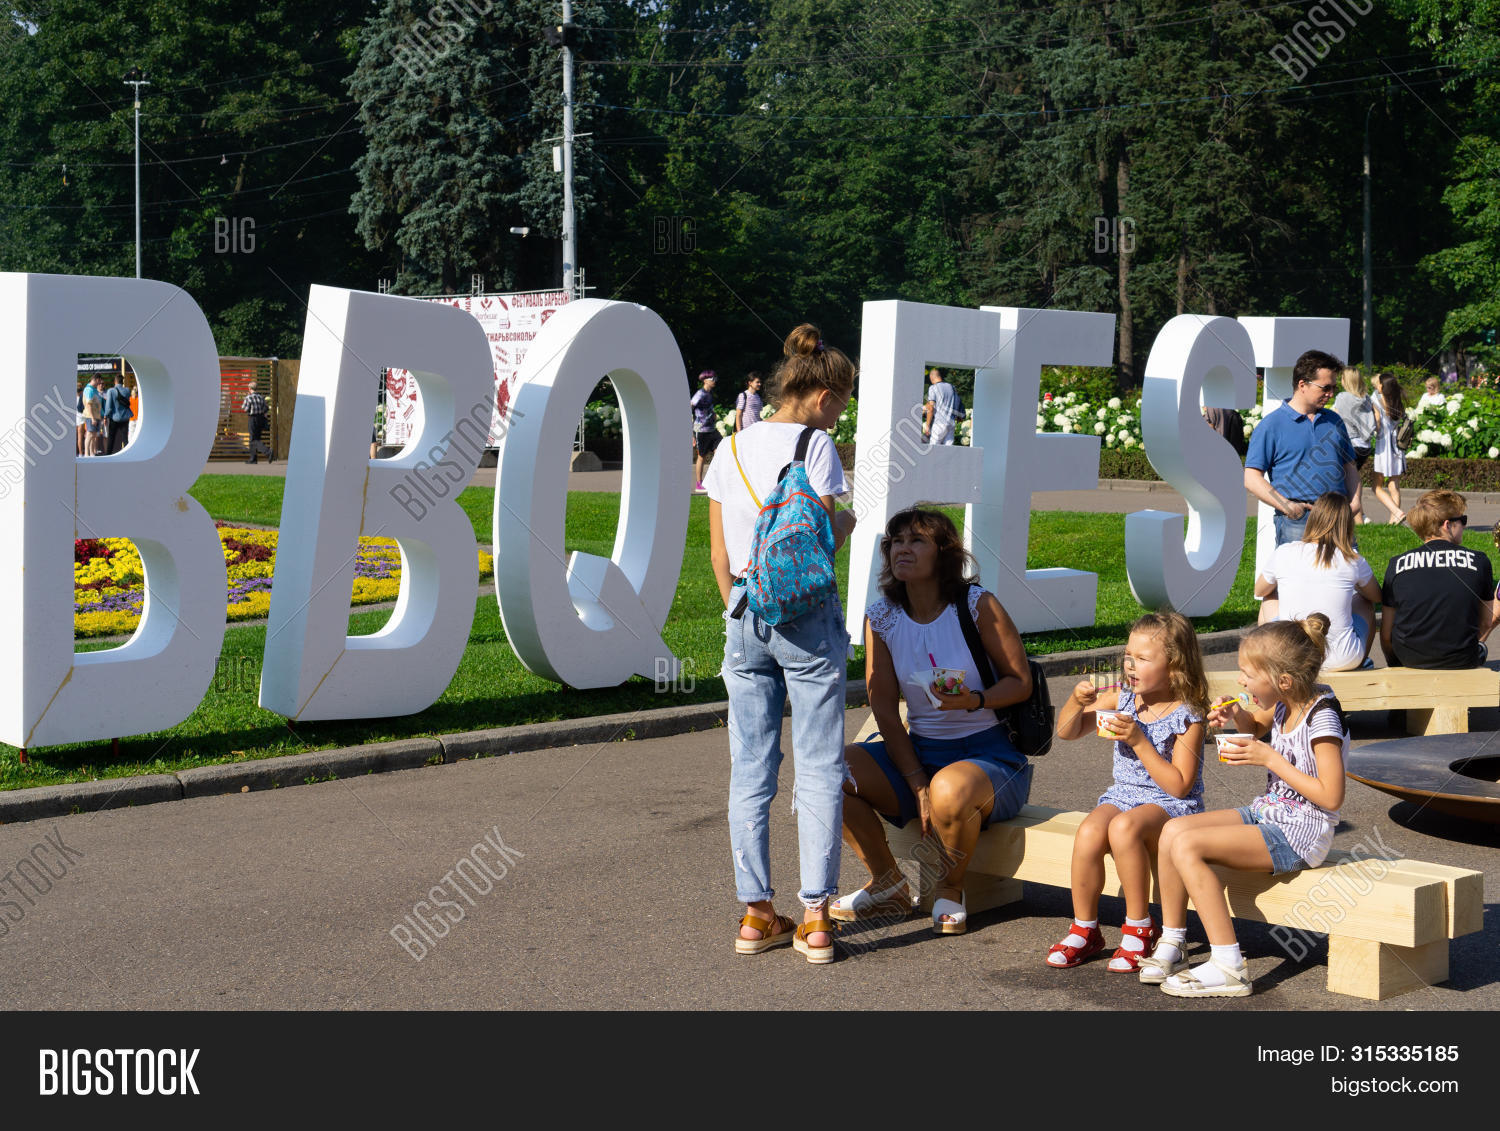 Lo dudo Exceder collar  Russia, Moscow, 26- Image & Photo (Free Trial) | Bigstock